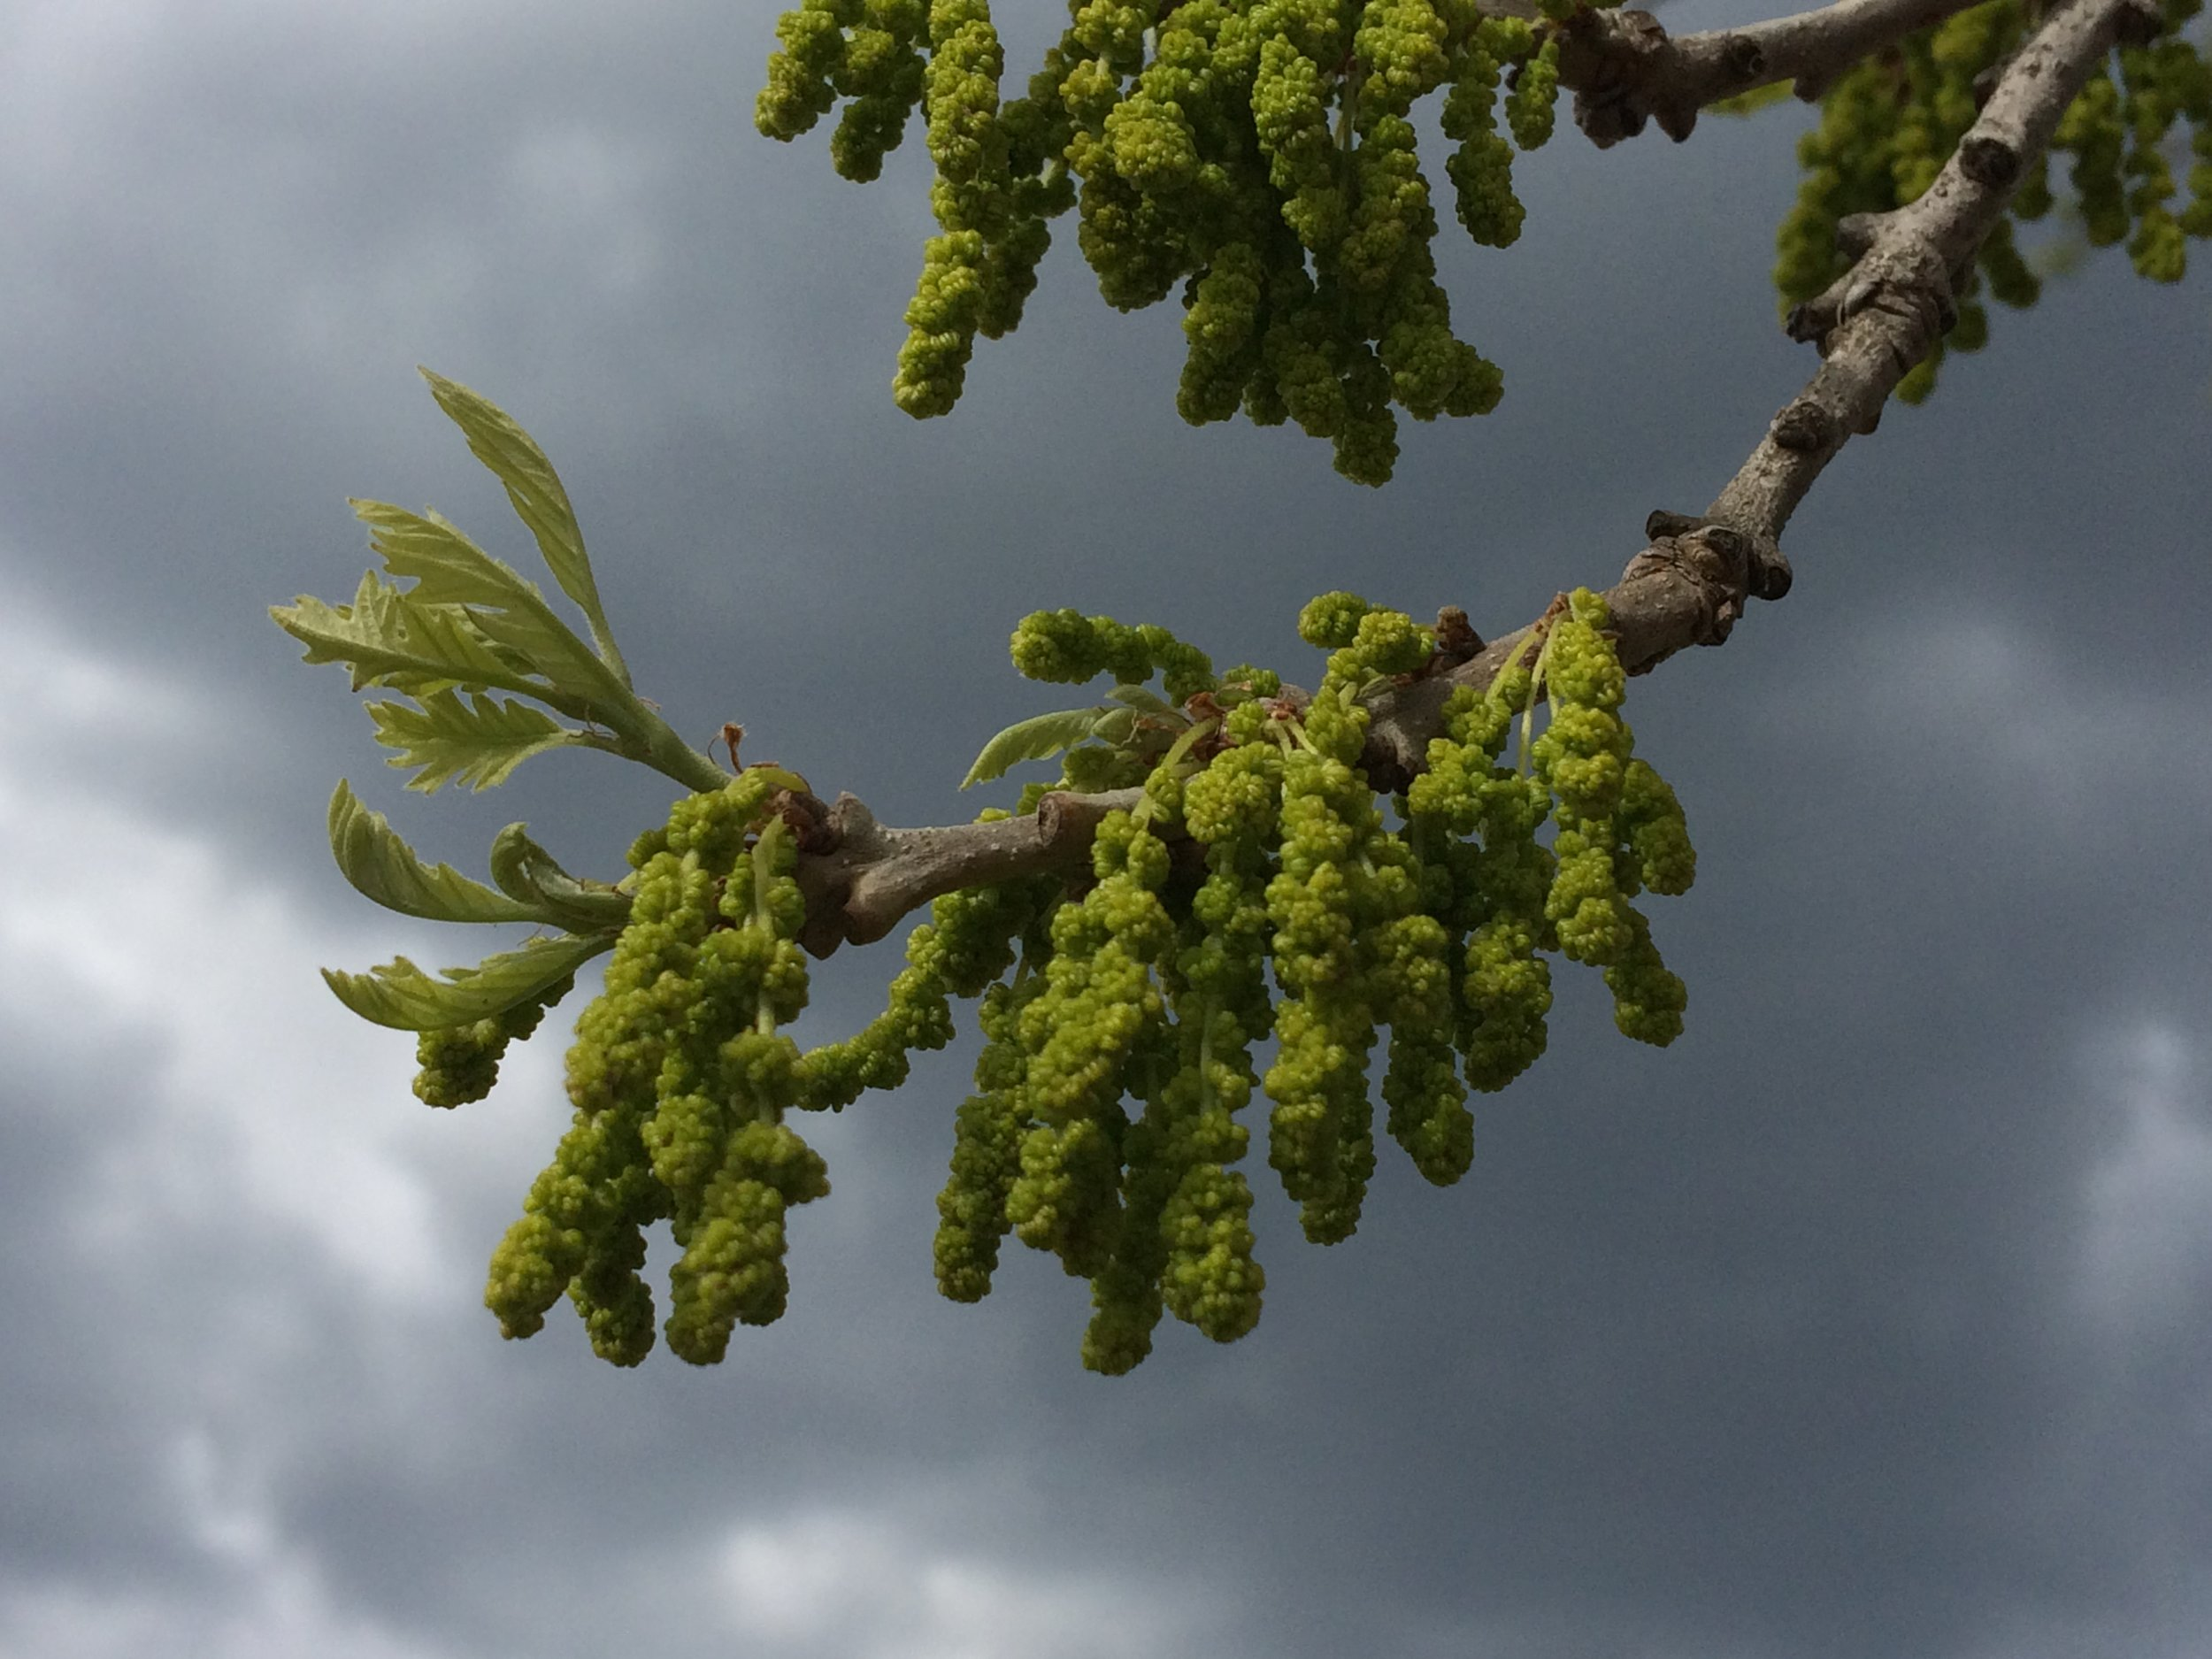 """""""   Bur oak catkins are getting ready to open   ."""" by    Eli Sagor    is licensed under    CC BY 2.0"""